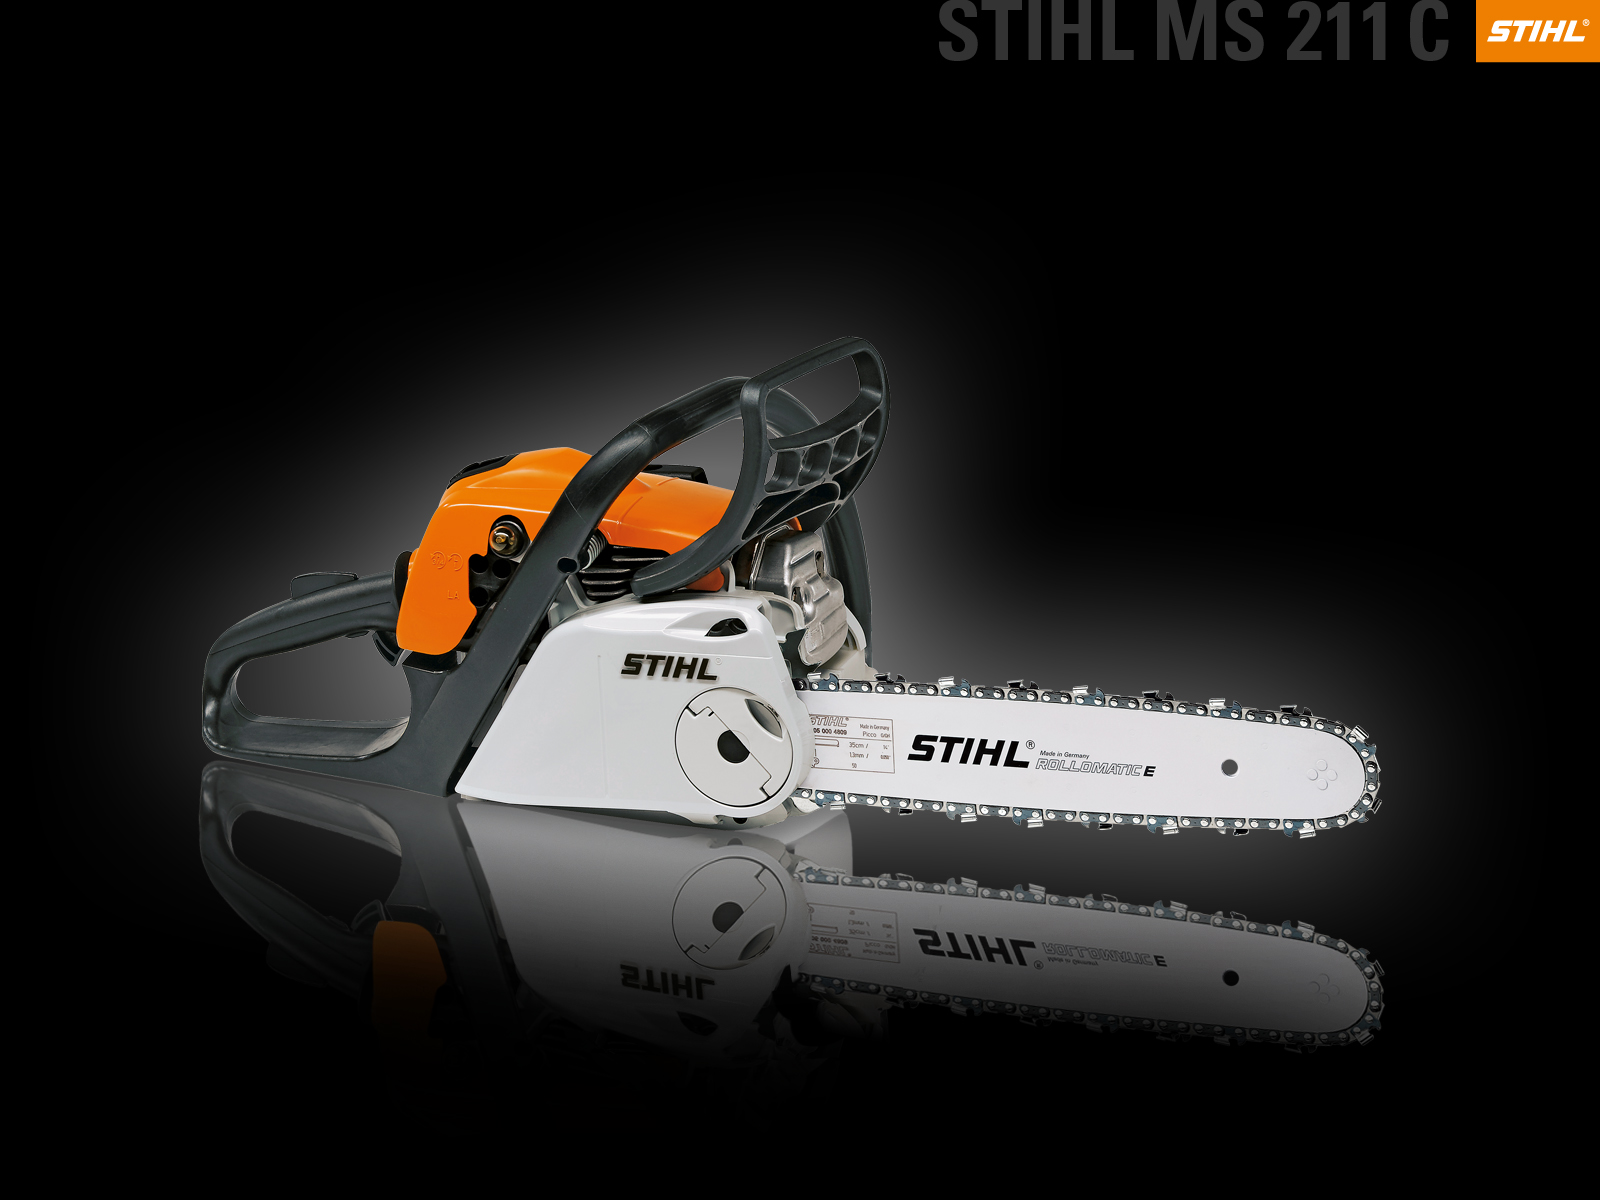 stihl product wallpapers | stihl